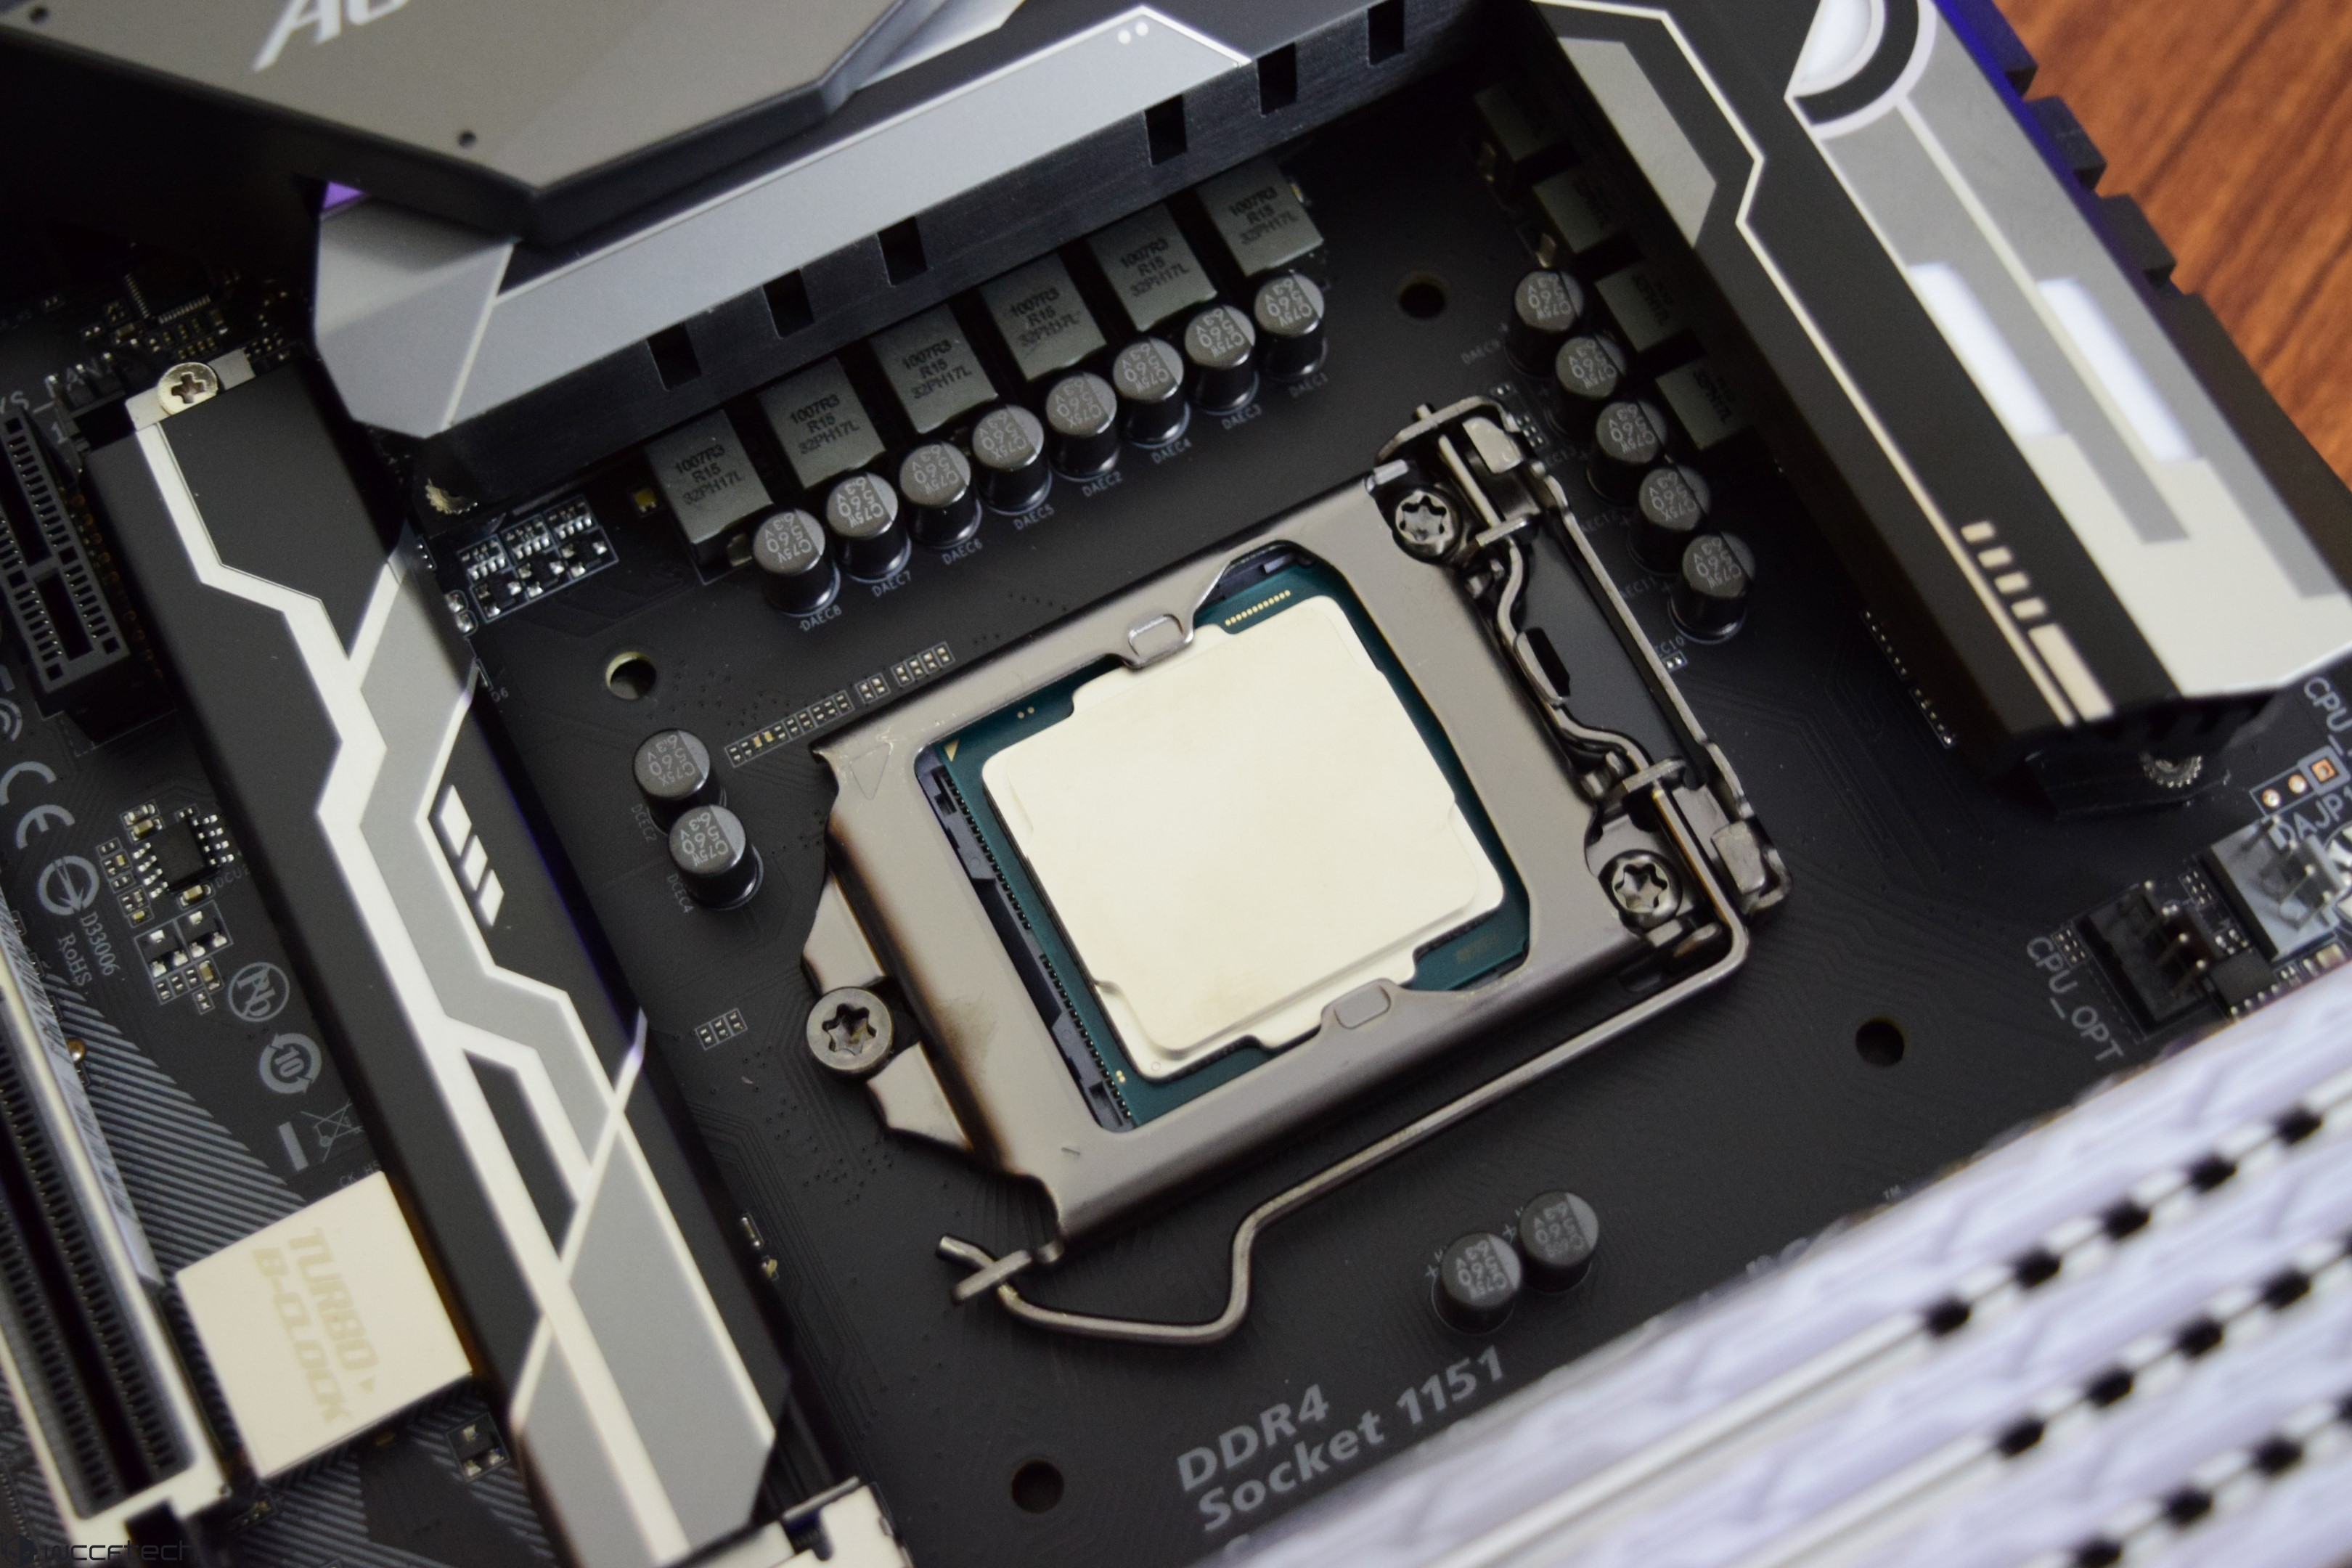 Intel Core I9 9900k With Gold Plated Soldered Ihs Pictured In All Custom Cpu Gpu Processing Unit Enhanced Circuit Board Design I7 9700k Intels First 8 Mainstream Desktop Up To 46 Ghz Clocks Across Cores